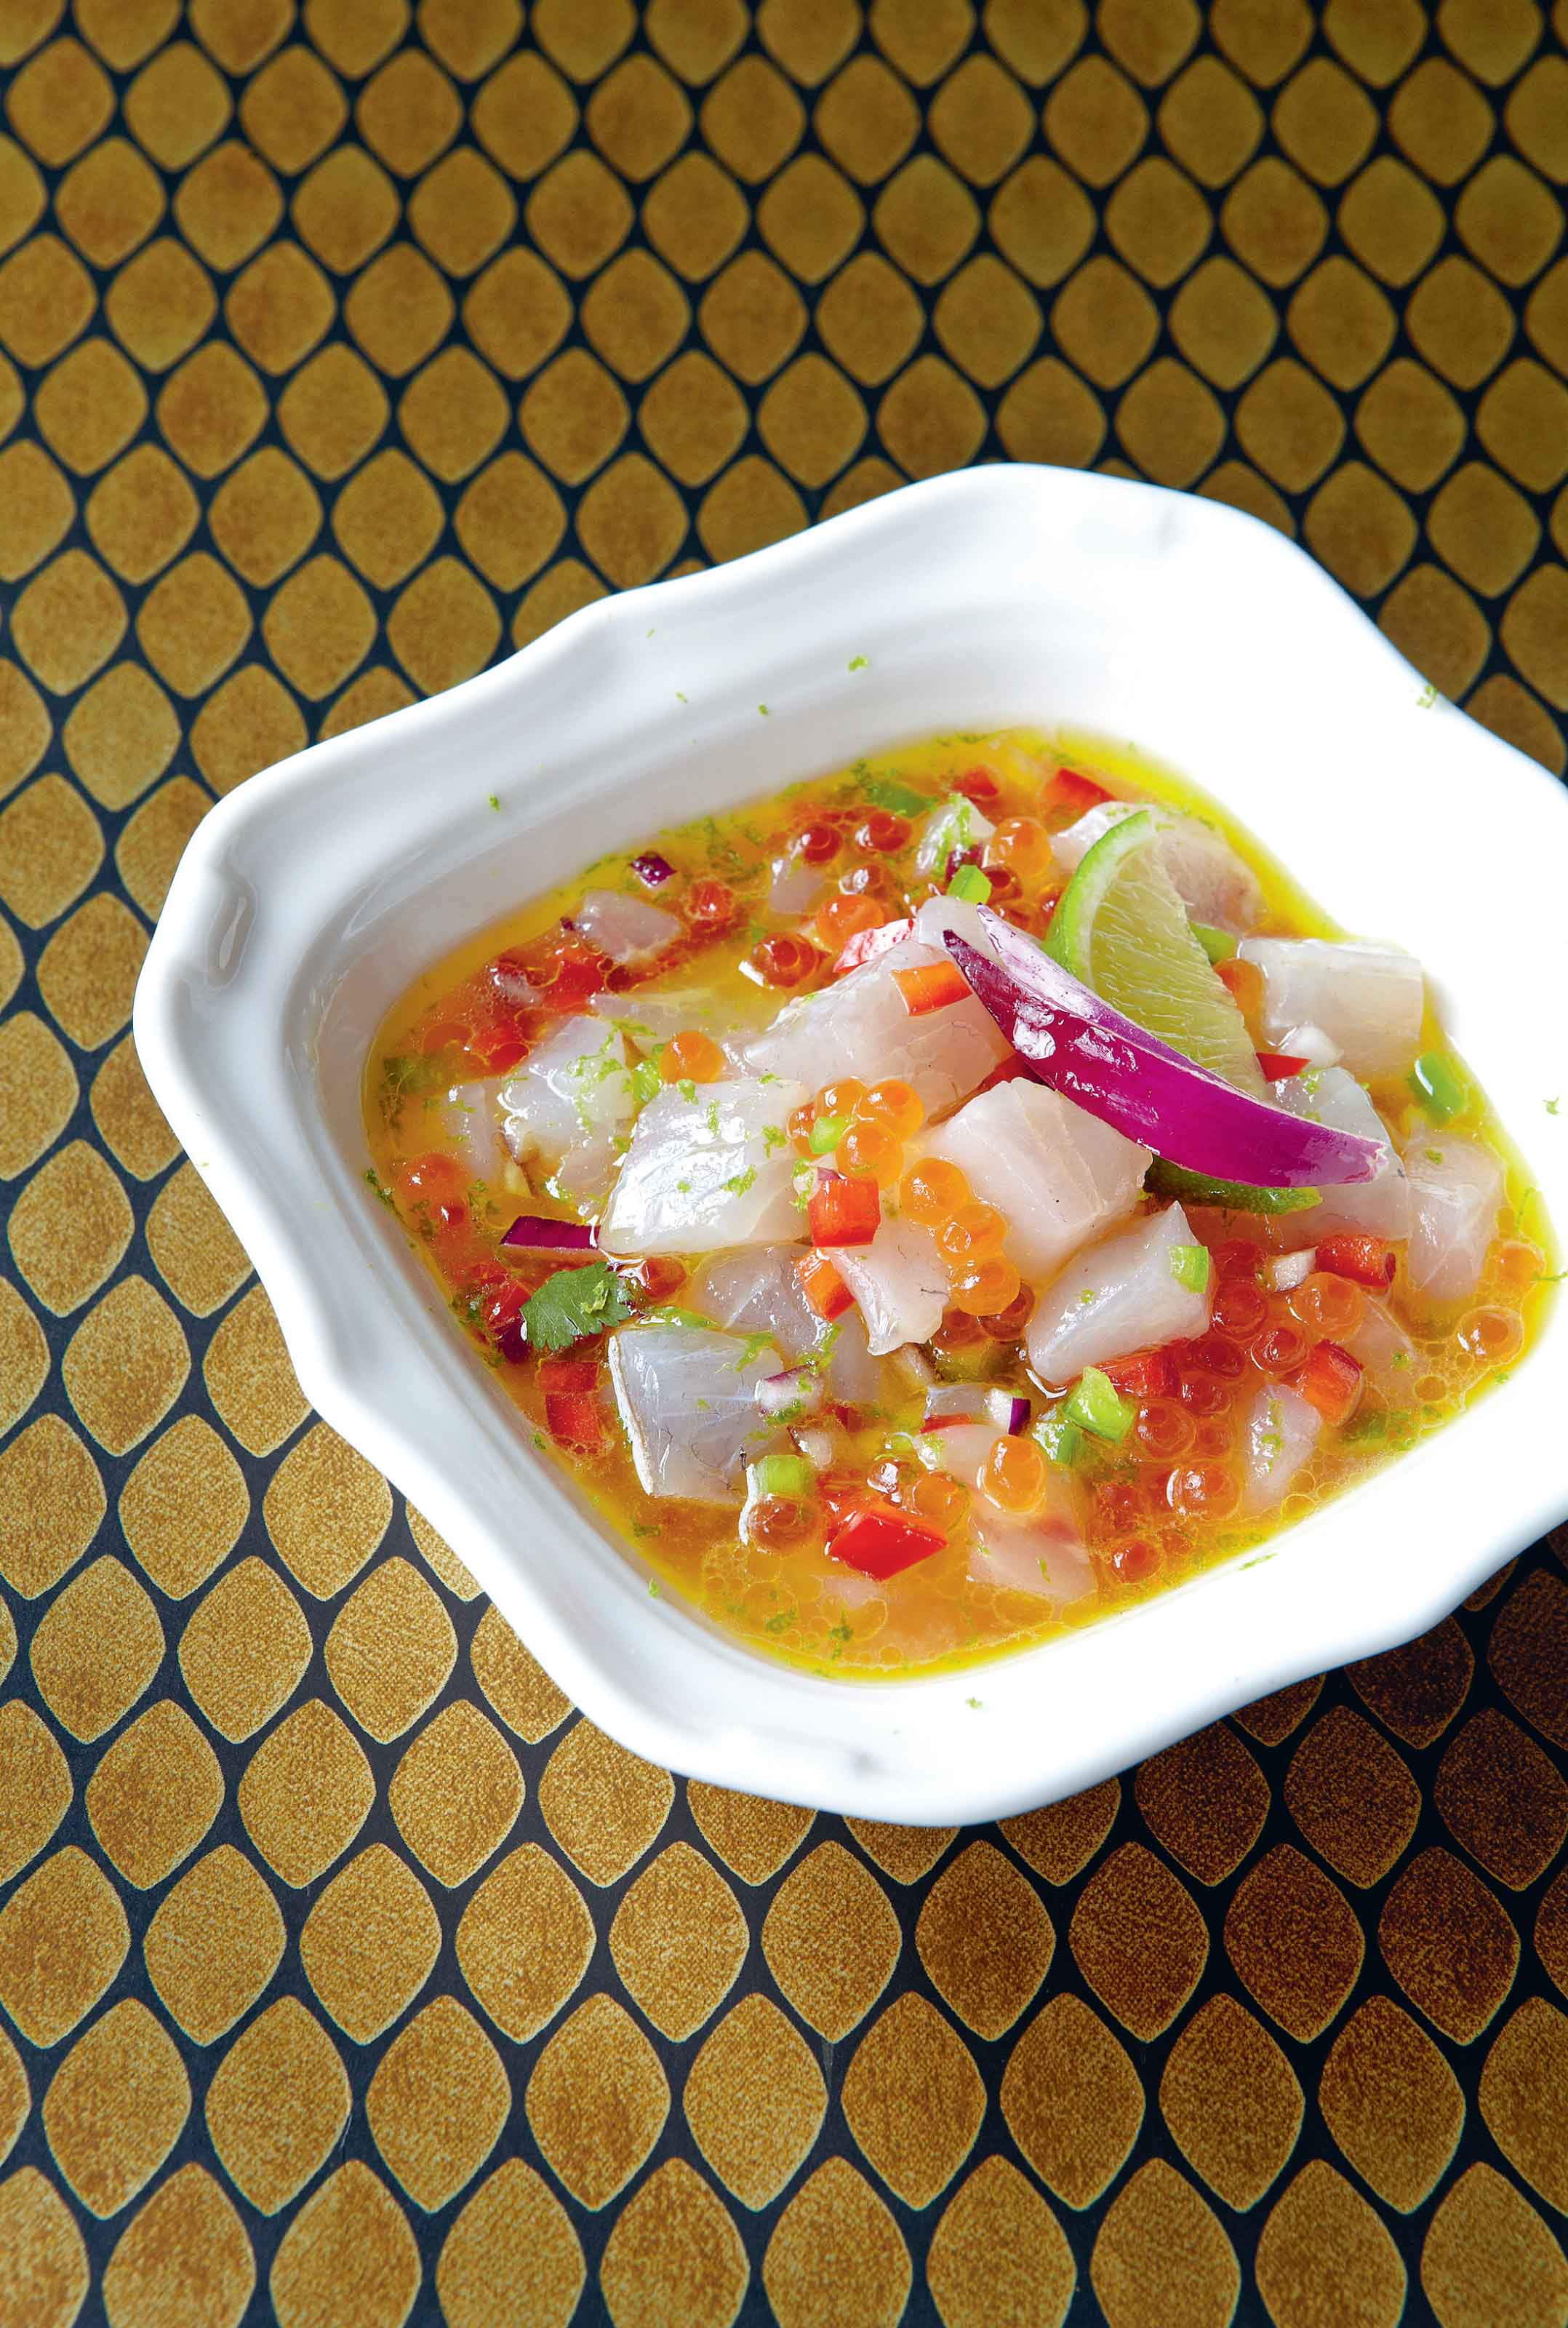 Sea bass ceviche